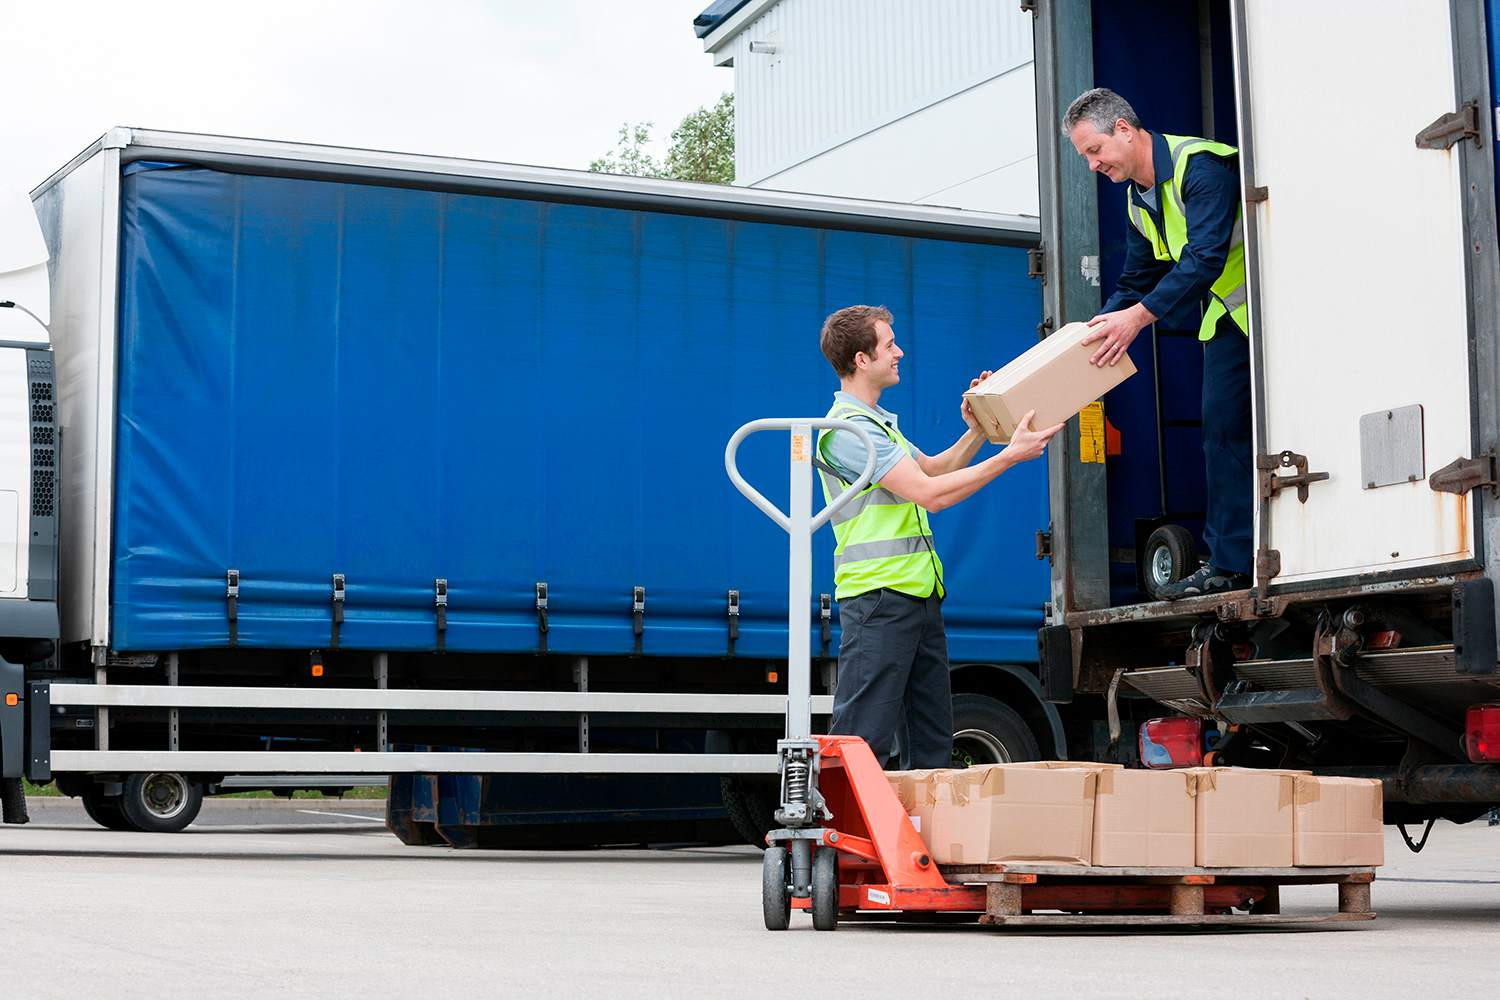 Two men unloading cardboard boxes from truck.